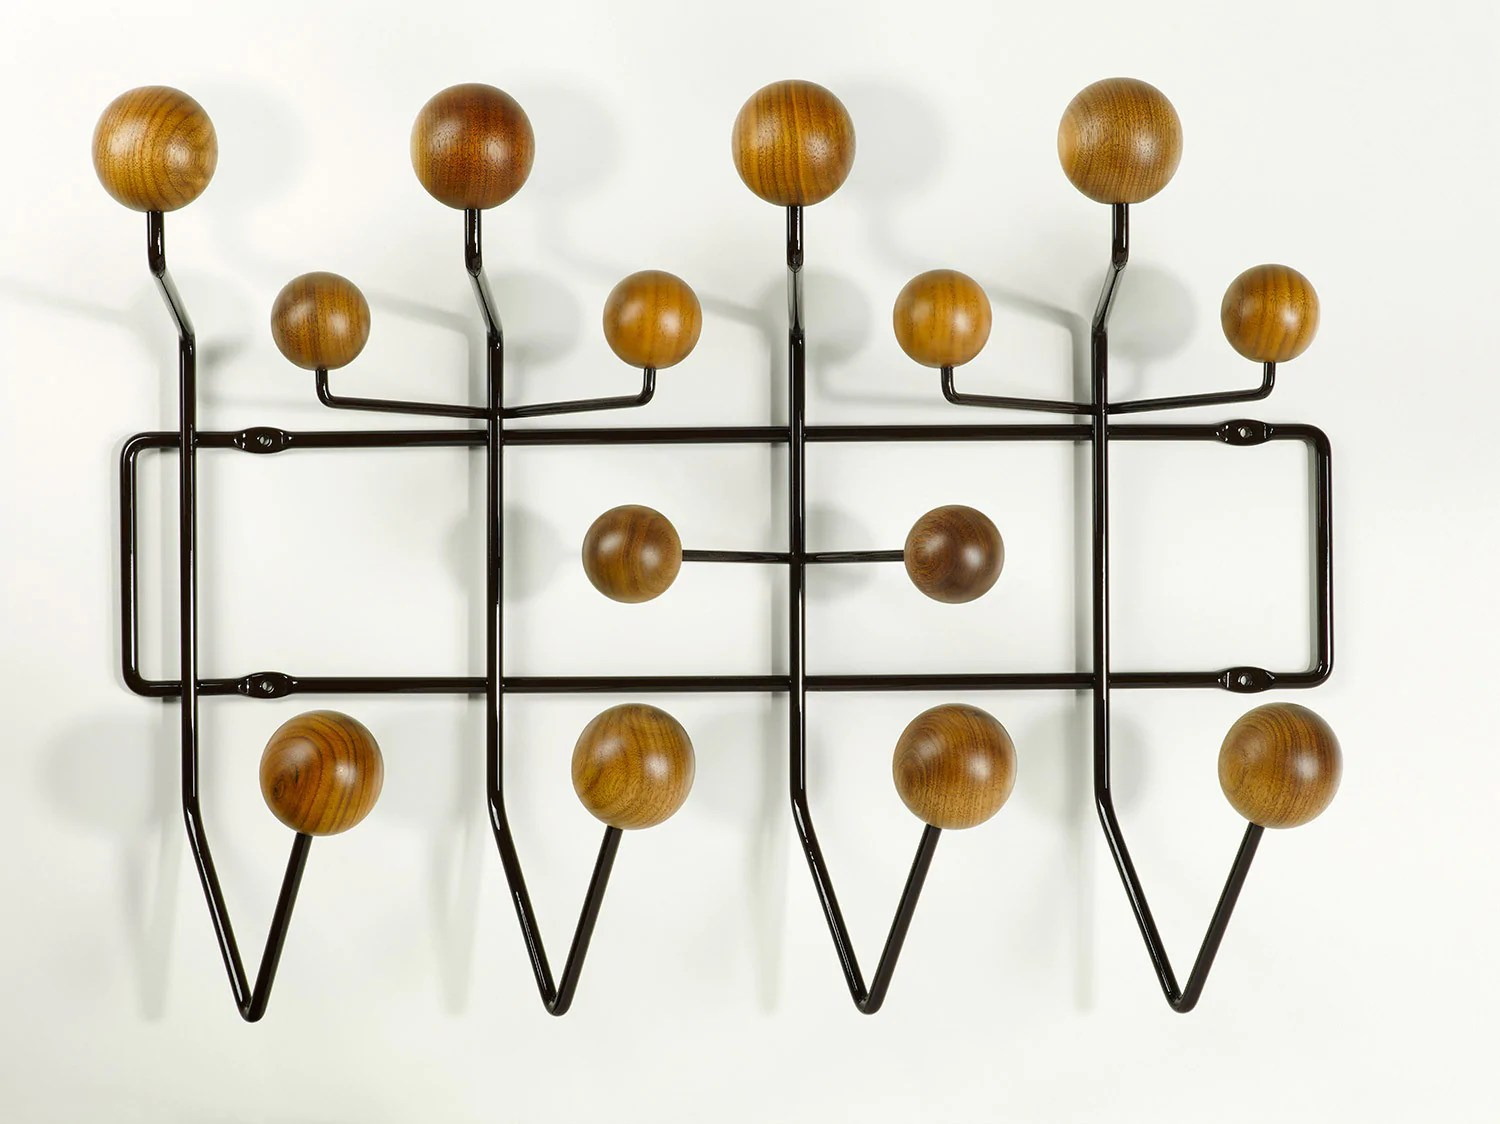 Eames Hang It All Walnut Couch Potato Company